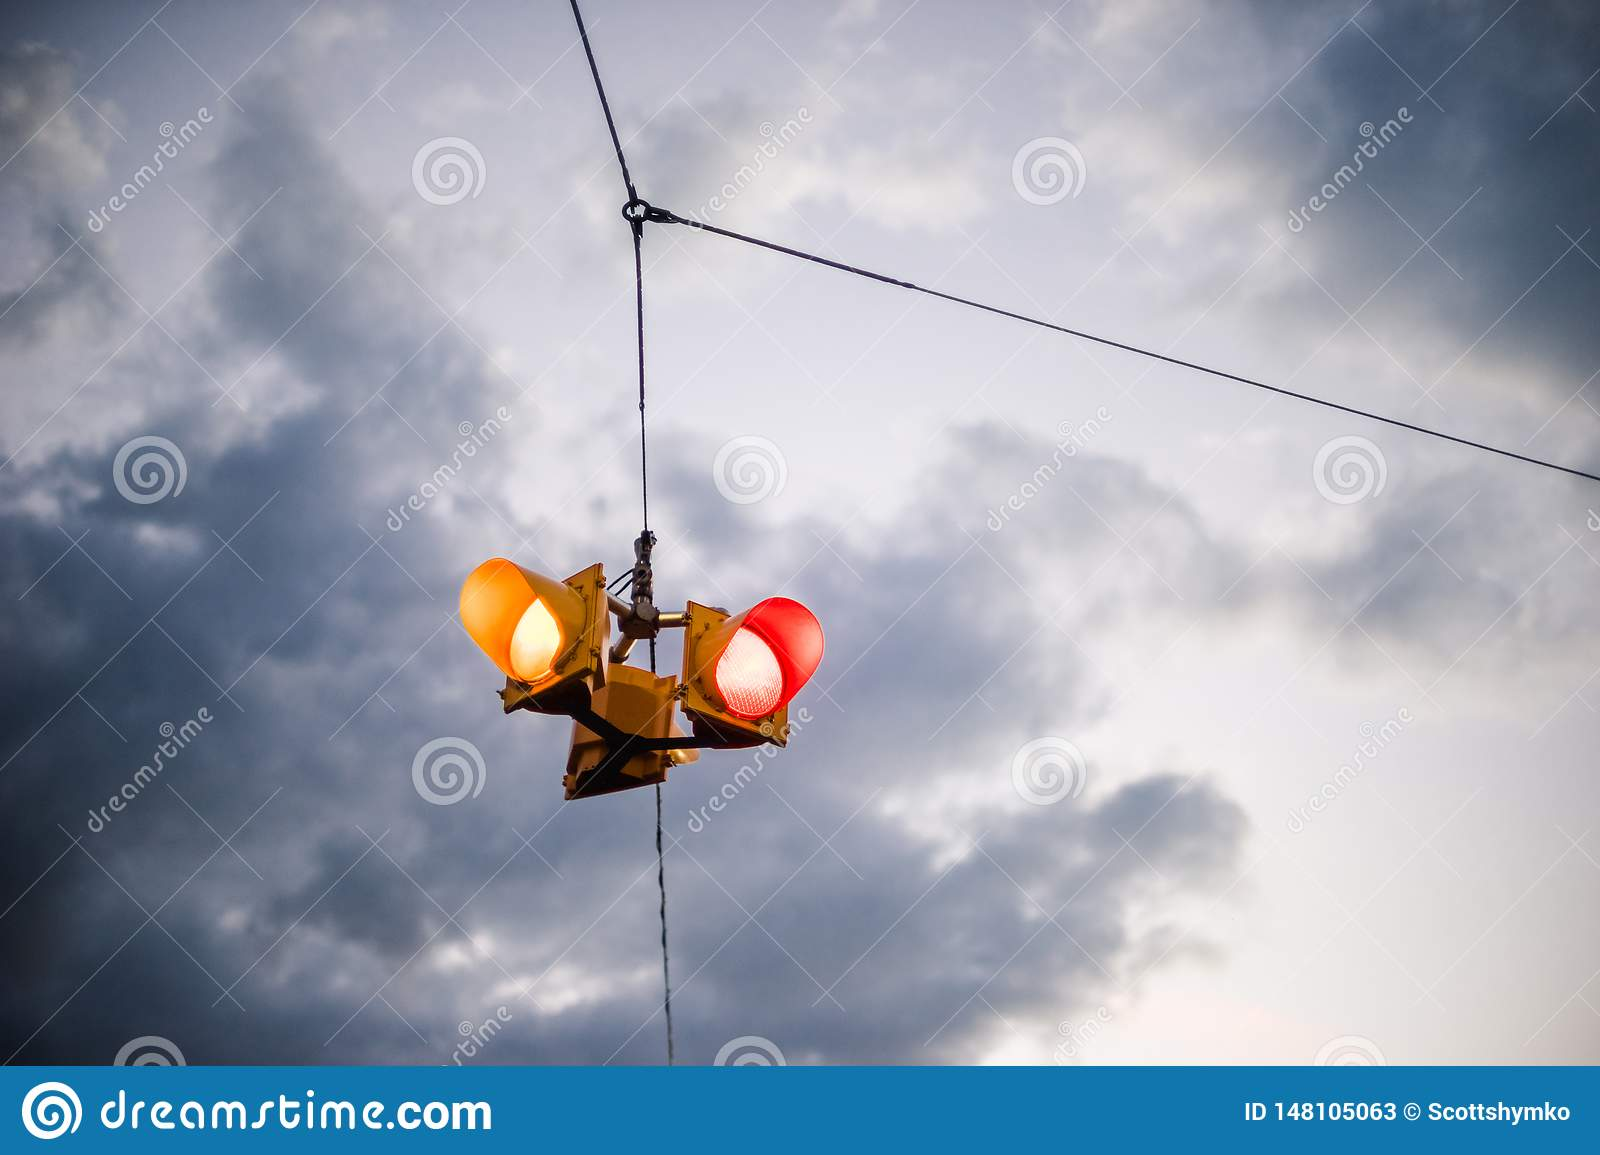 A suspended traffic signal against a moody sky